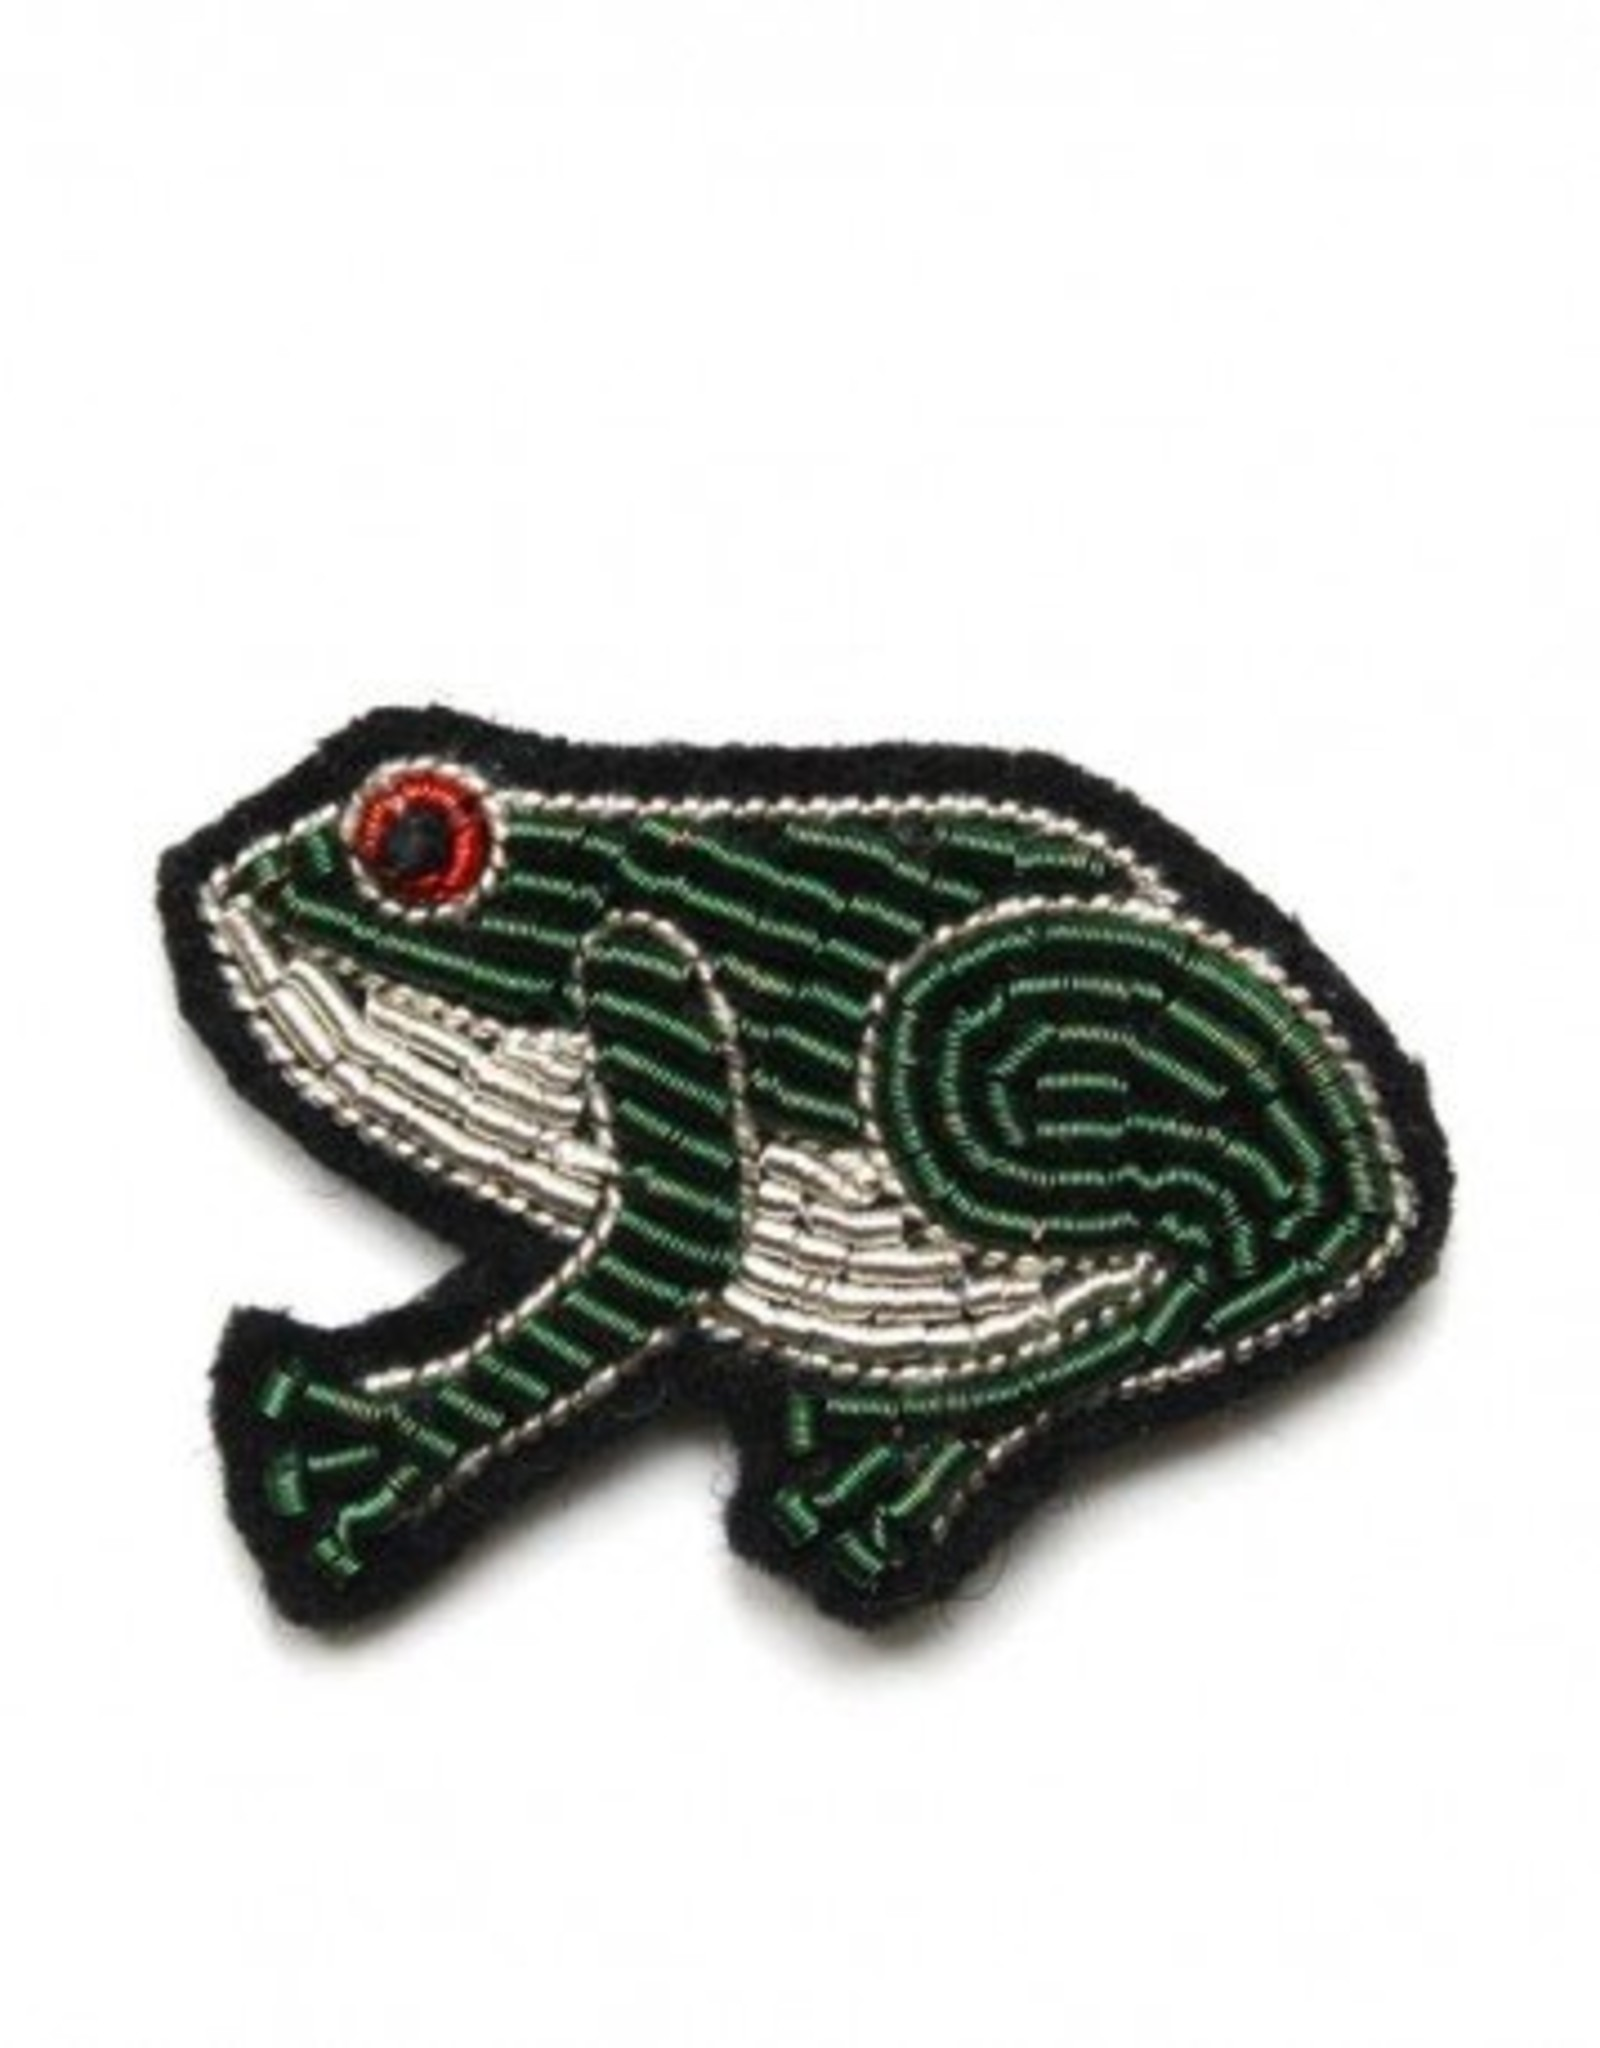 Macon & Lesquoy 'Frog' Pin